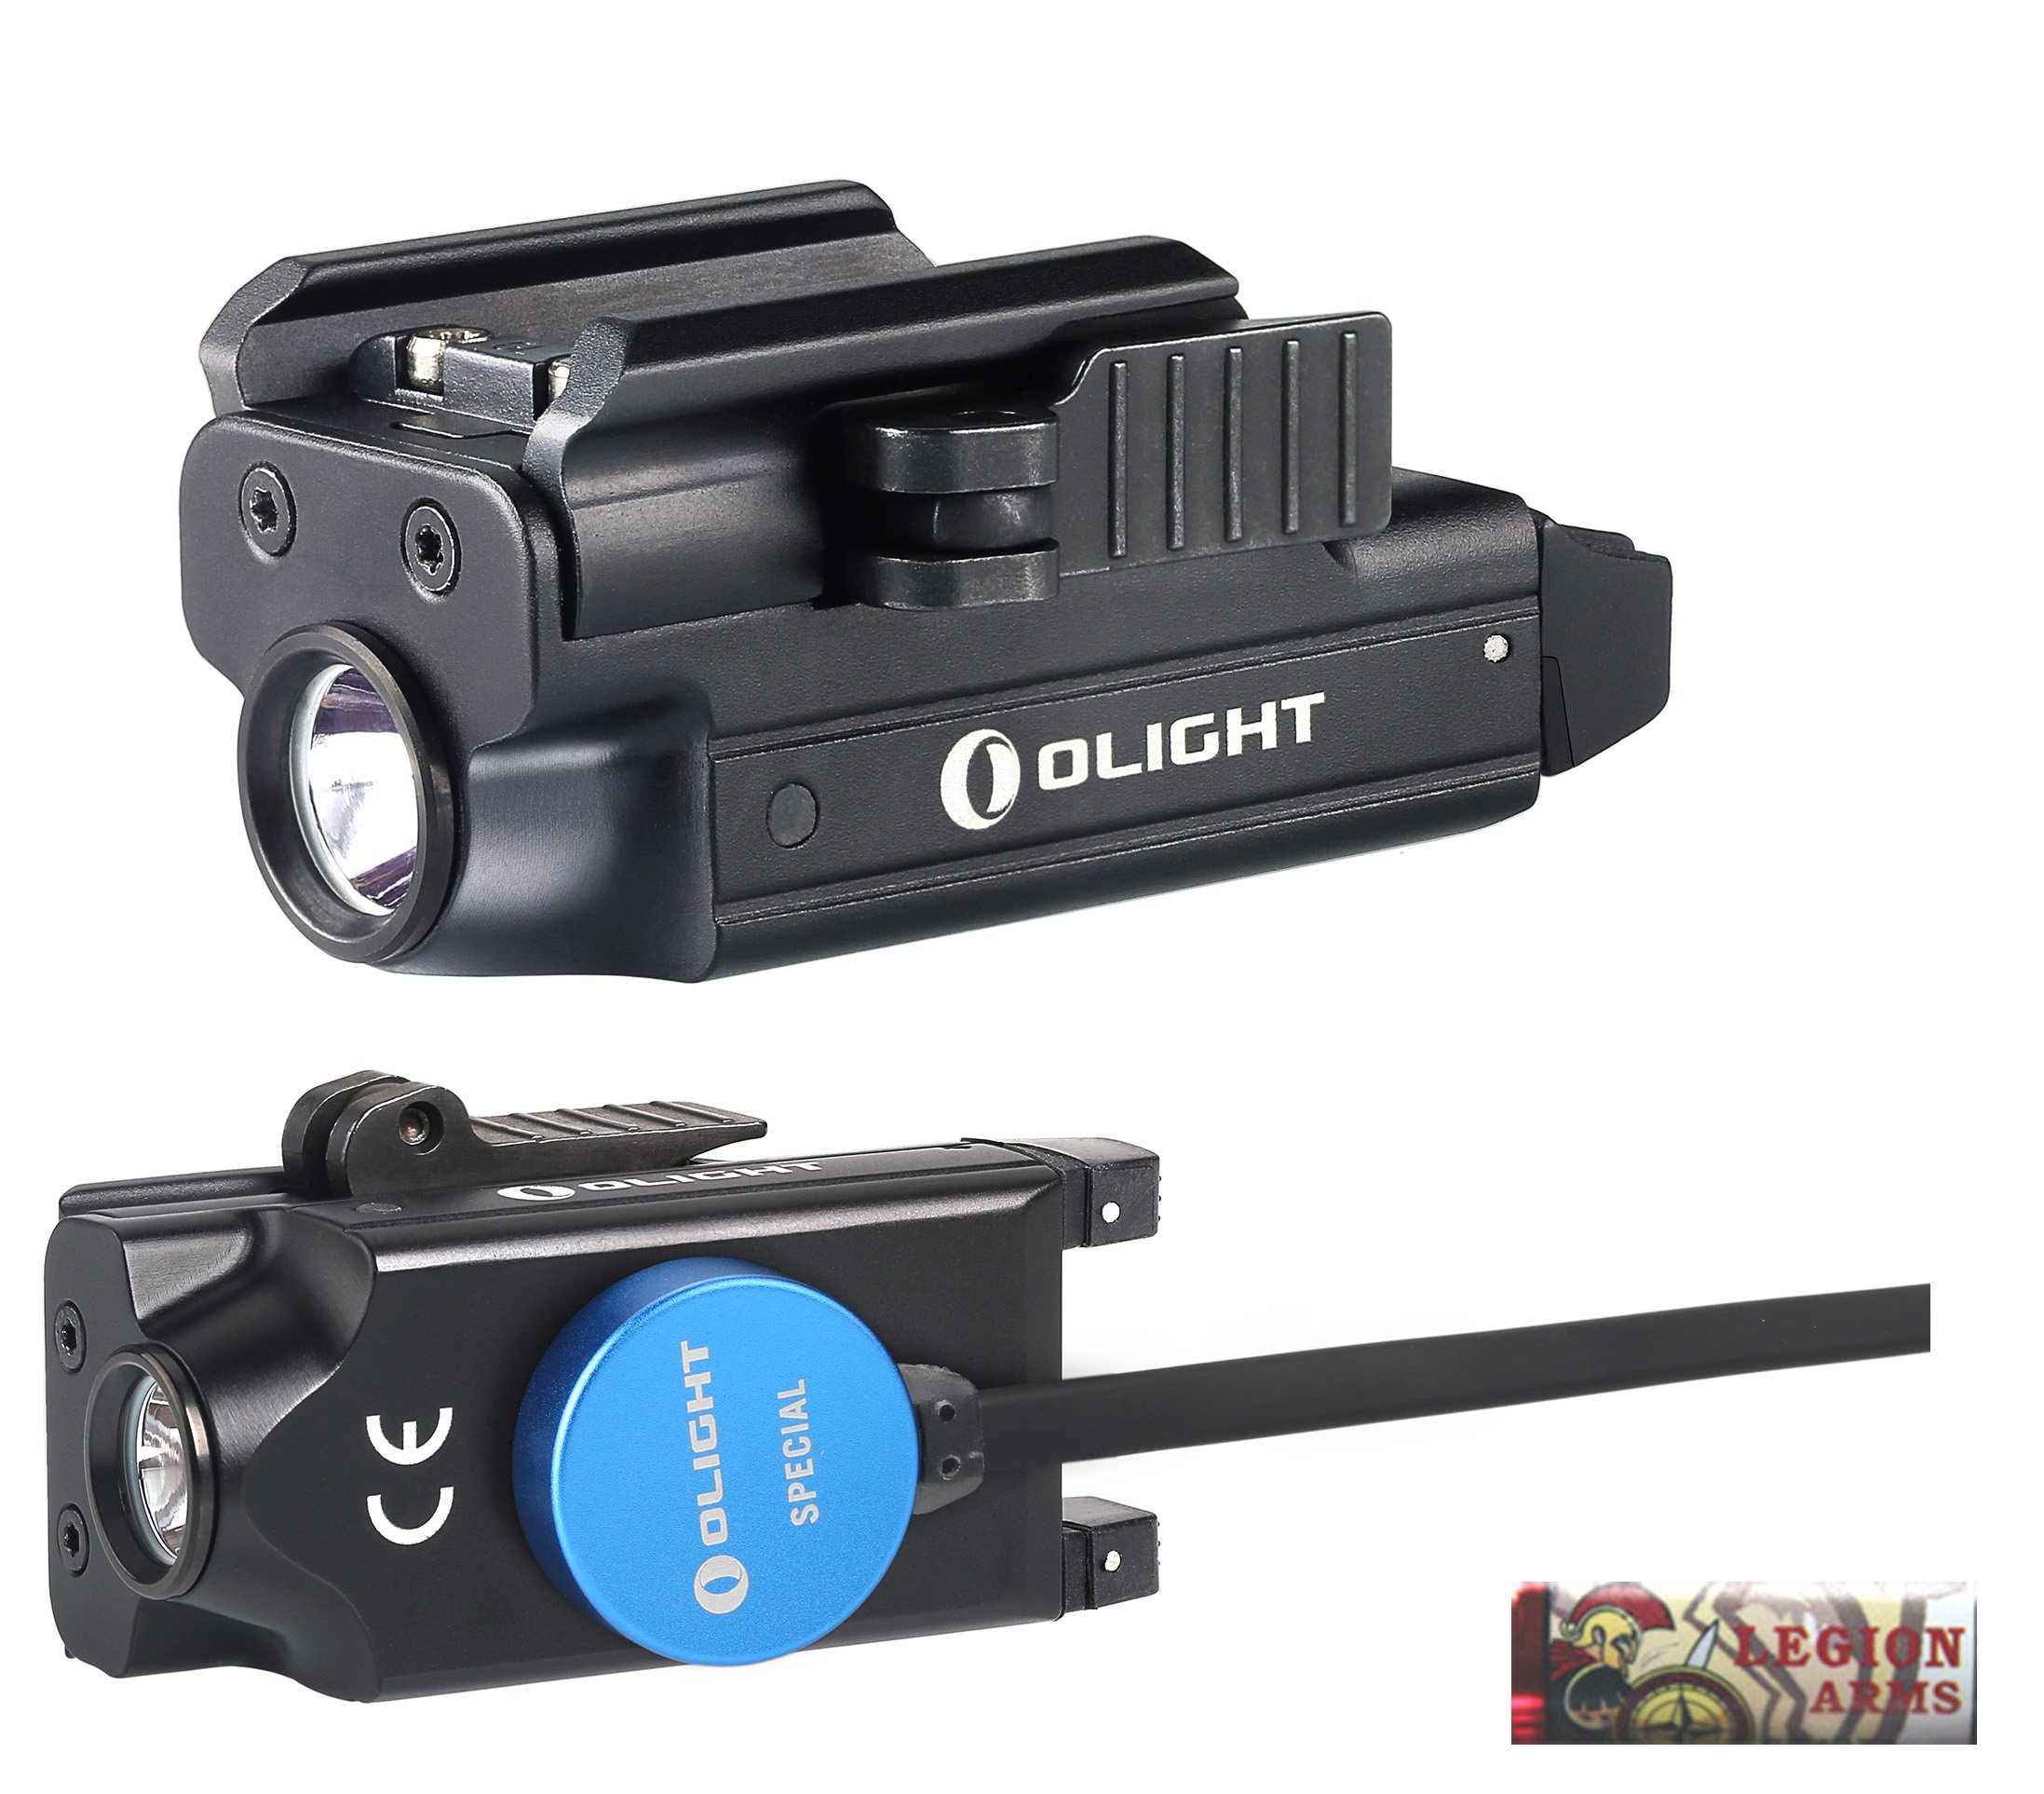 Olight PL-MINI valkyrie 400 Lumen LED Rechargeable compact pistol light, Build-in Lithium Battery, charging cable, quick release mount for glock, s&w, springfield, sig sauer, etc w/ LegionArms sticker